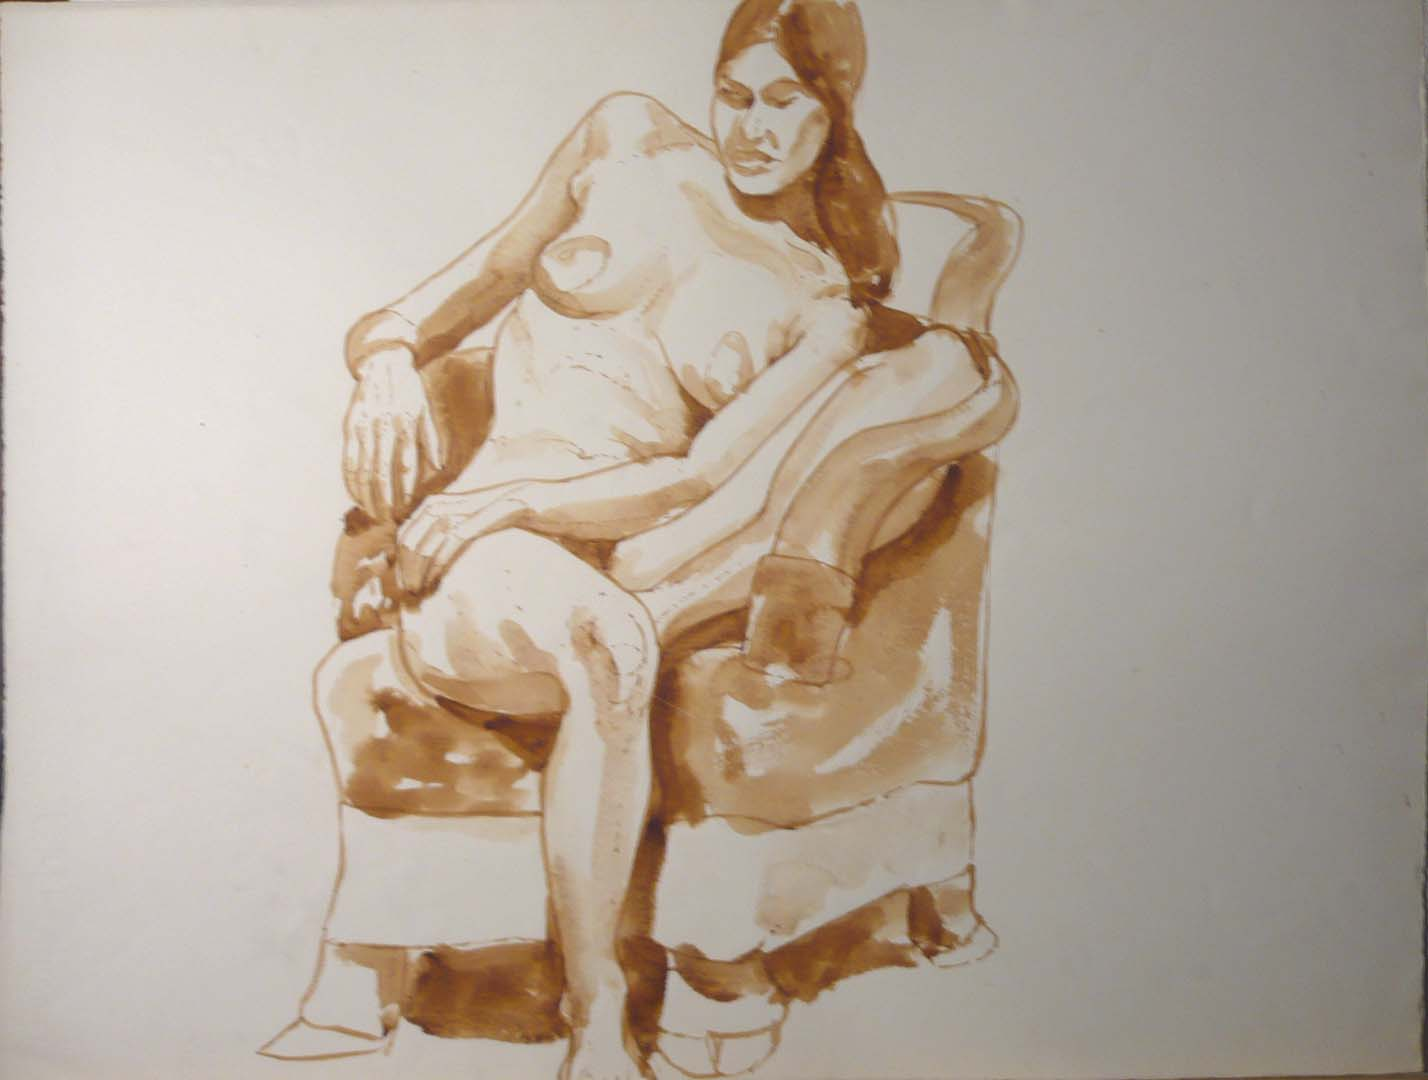 "Nude with Bent Leg Seated on Chair Sepia 20.75"" x 27.375"""